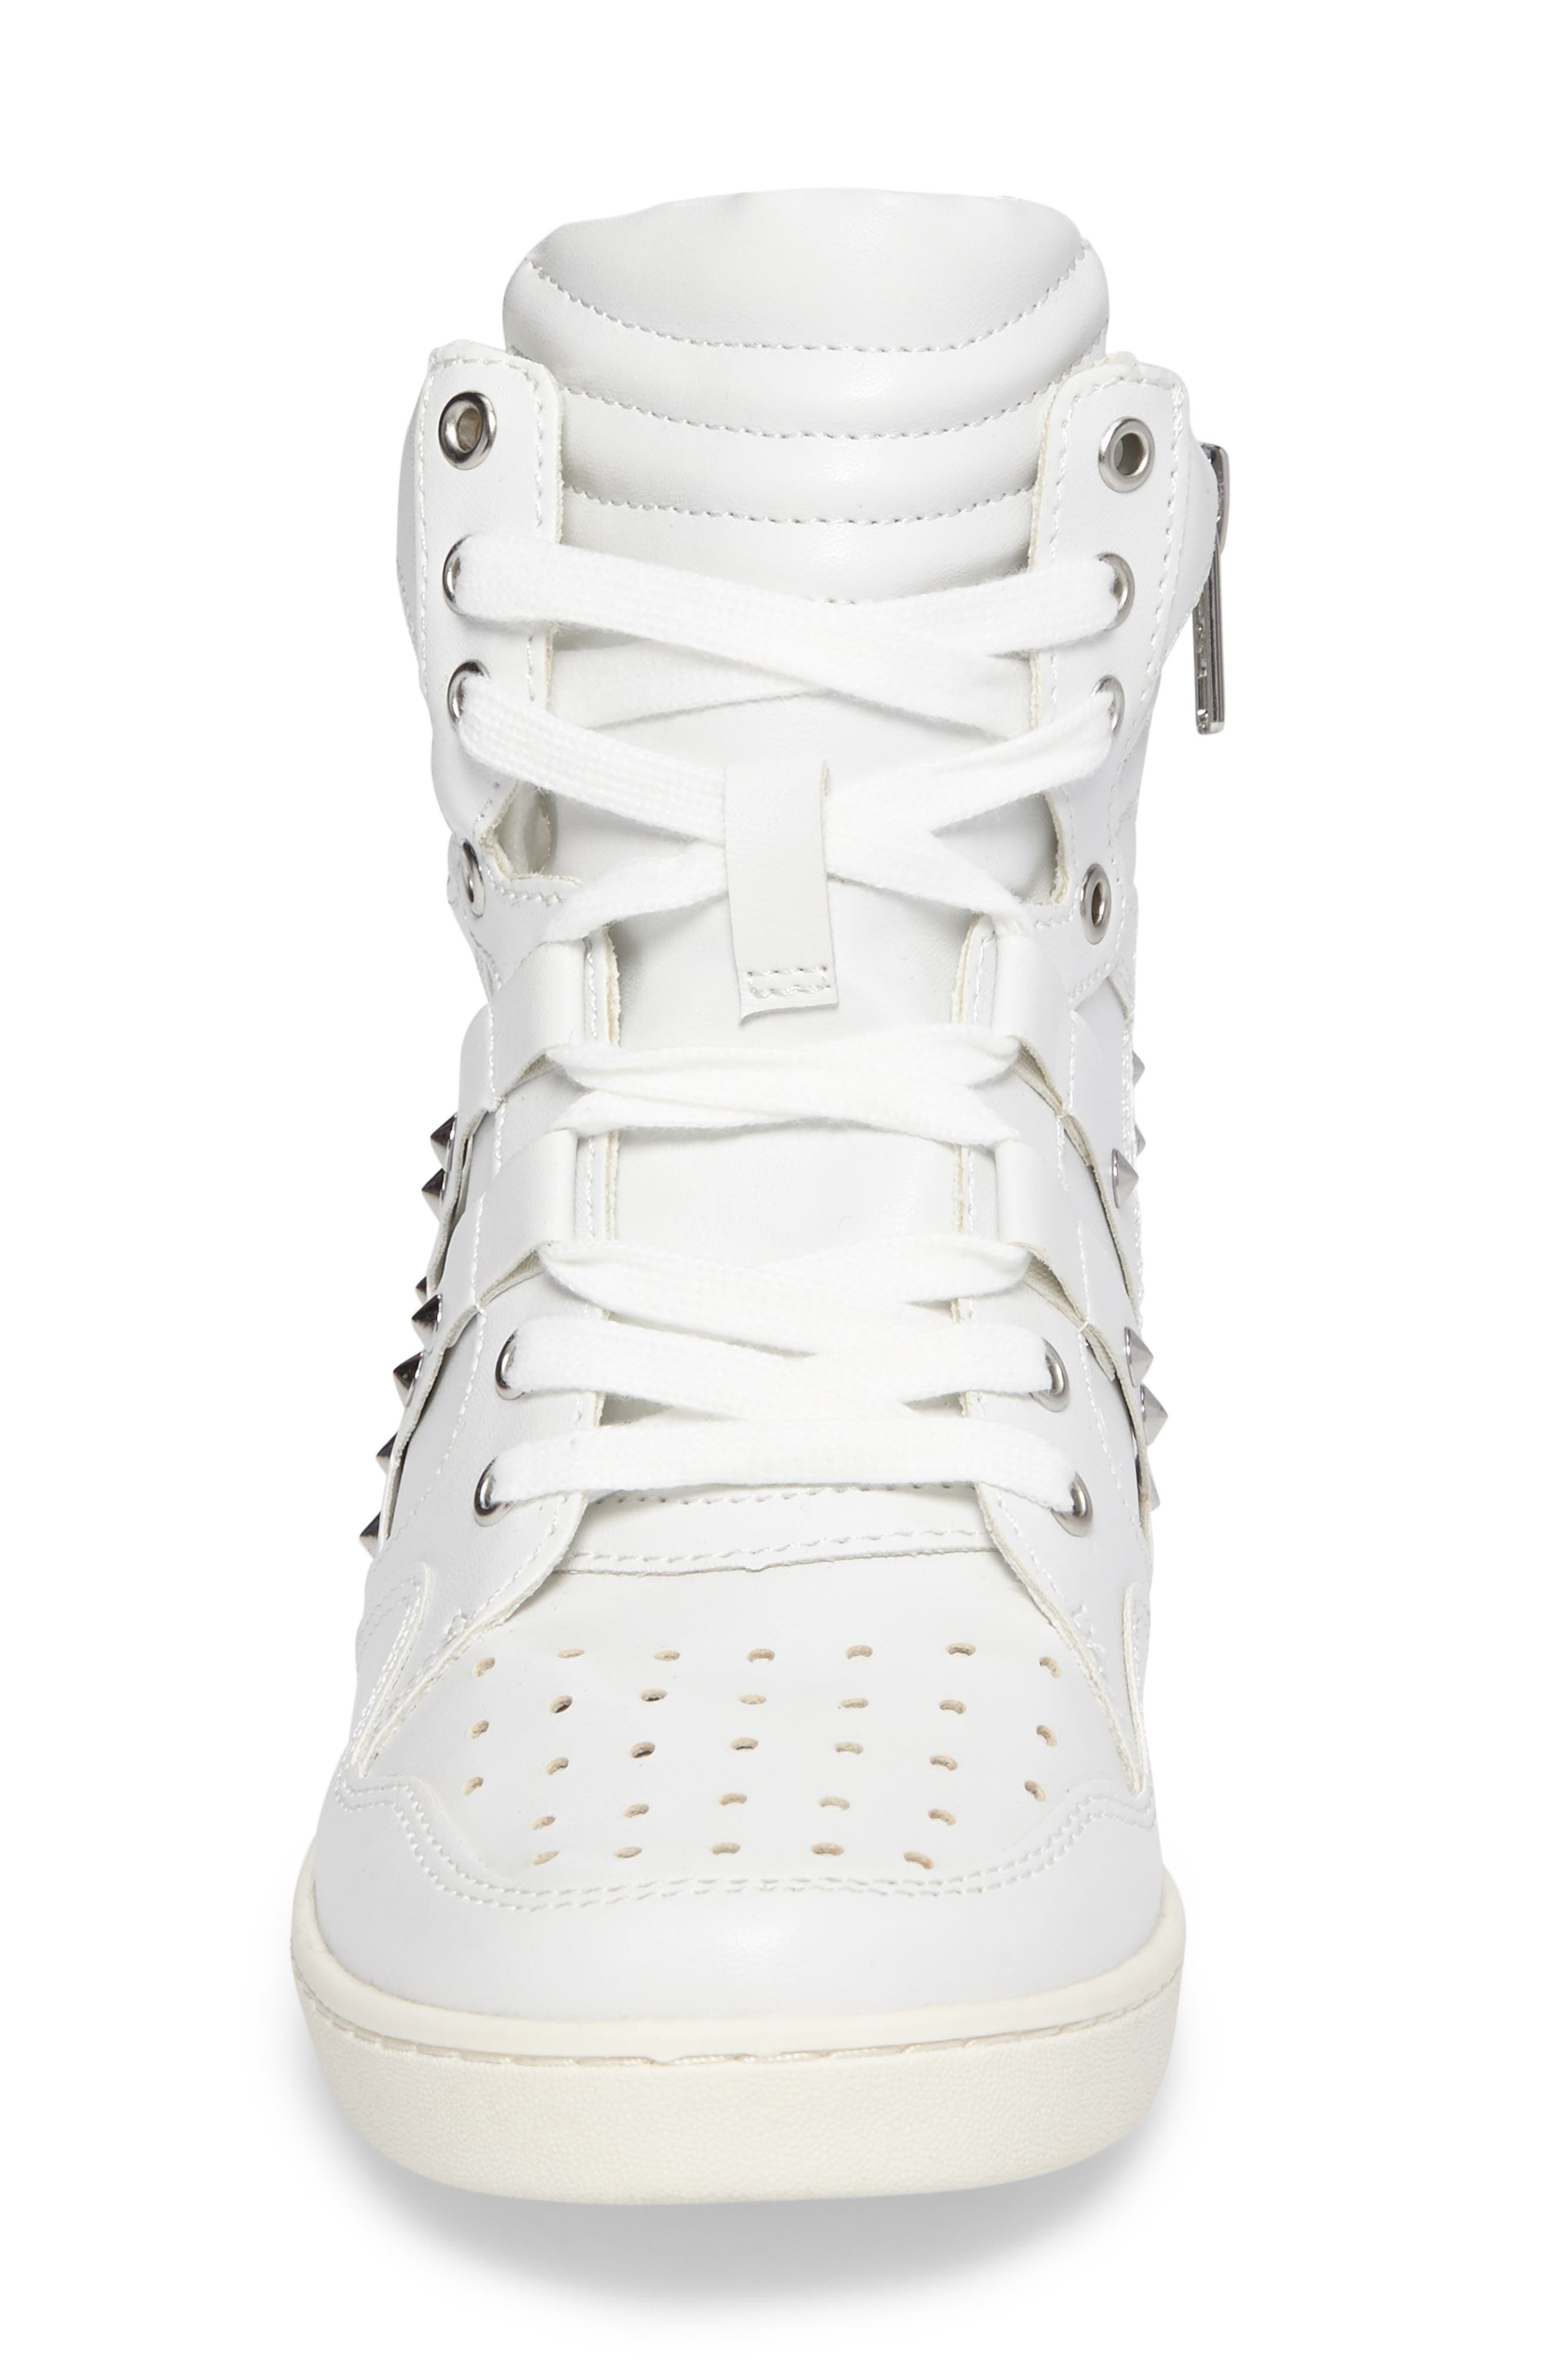 Boogie Chic Studded High Top Sneaker,                             Alternate thumbnail 8, color,